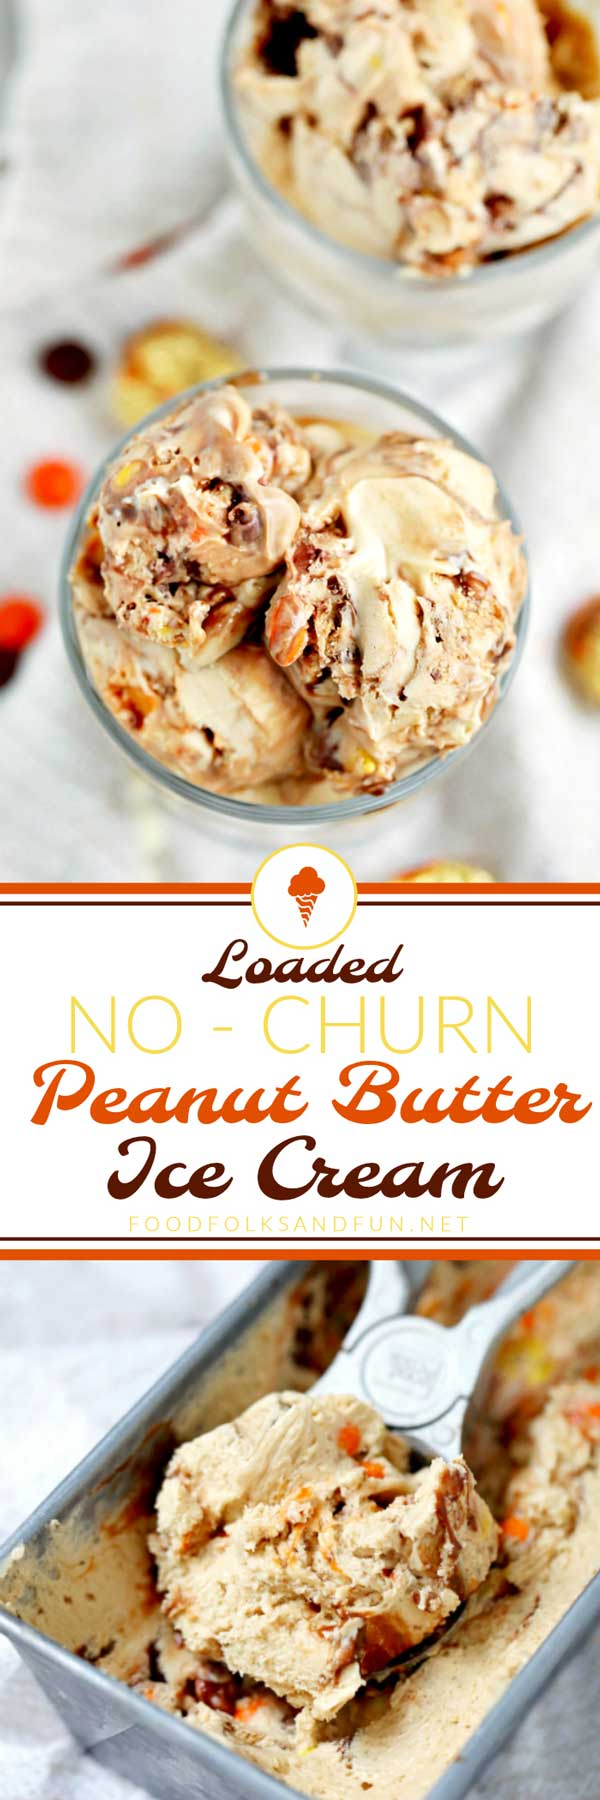 The Best Peanut Butter Ice Cream